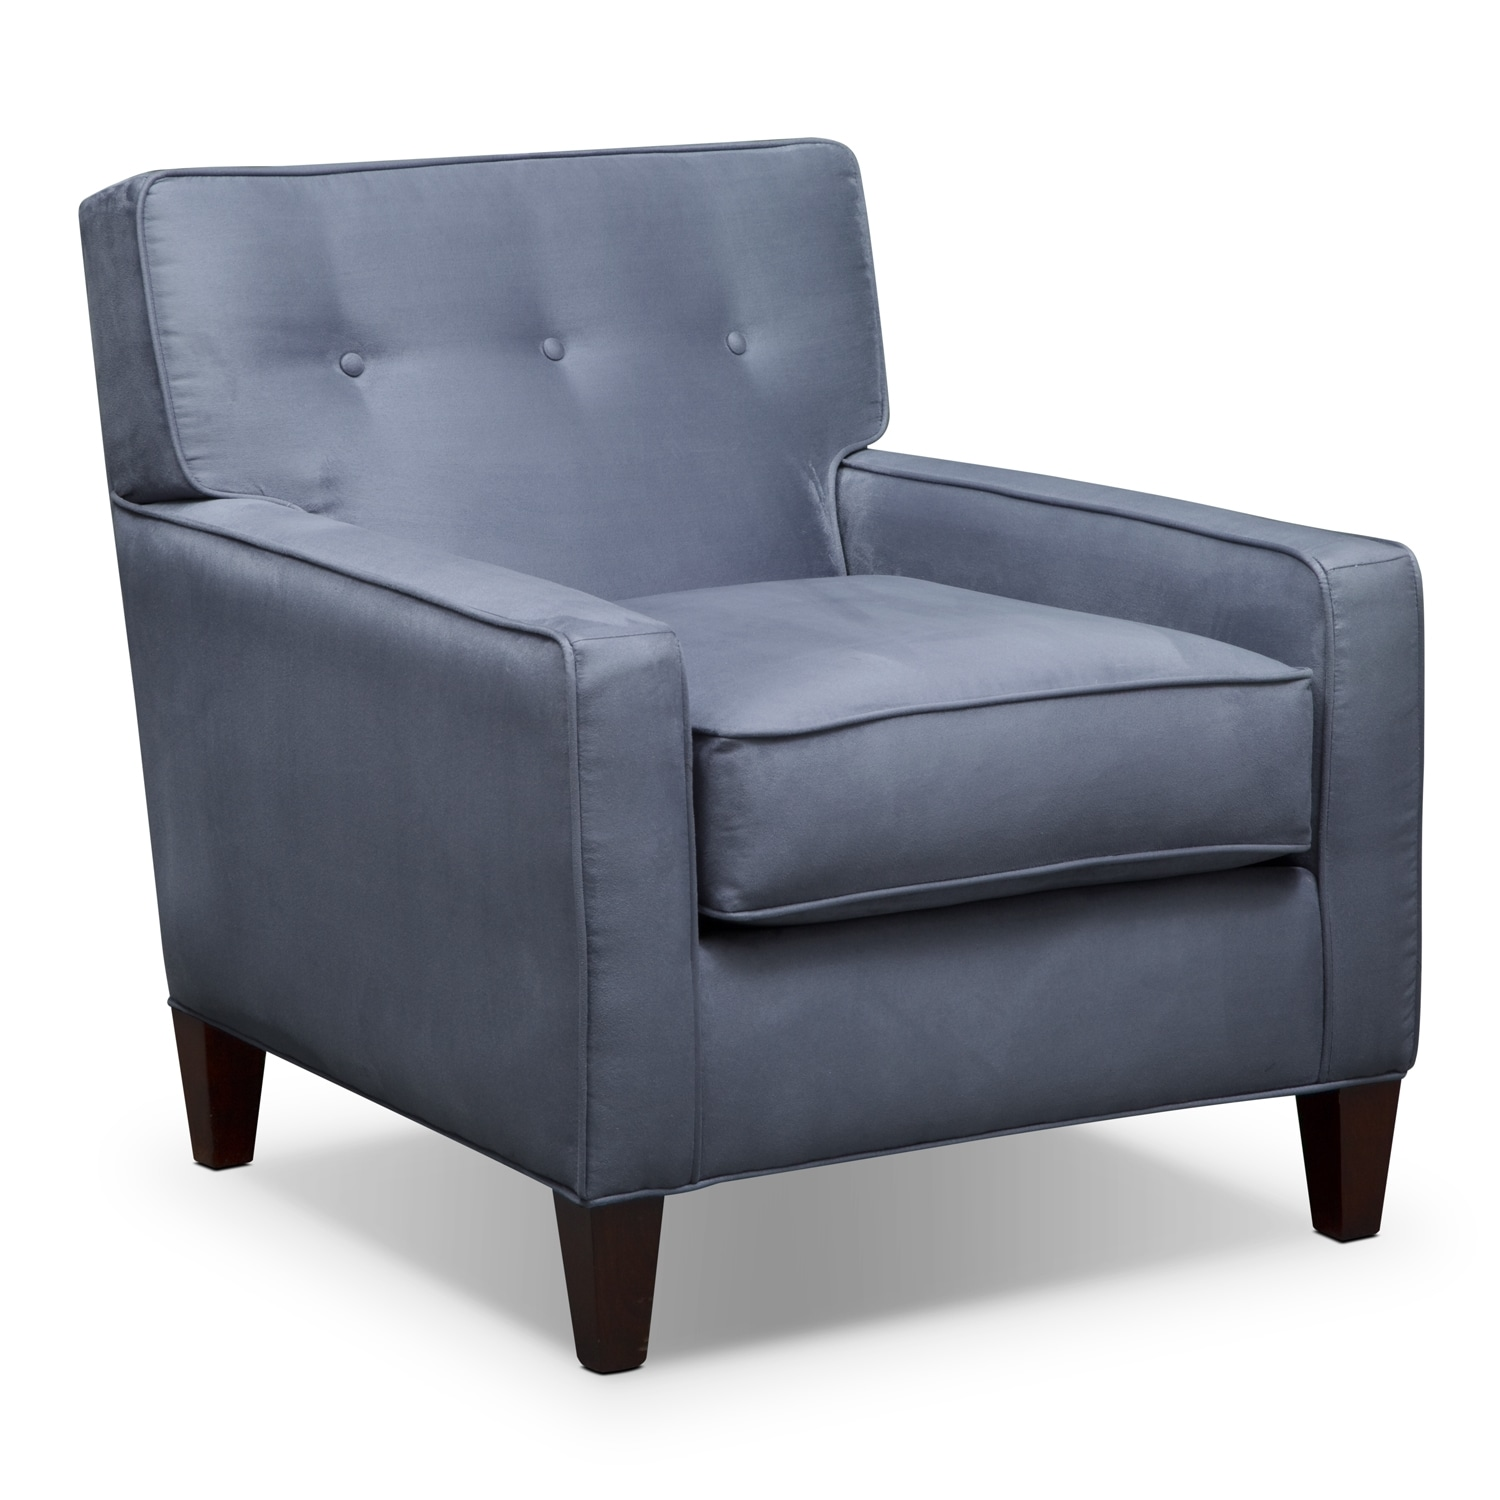 Living Room Furniture - Soho IV Accent Chair